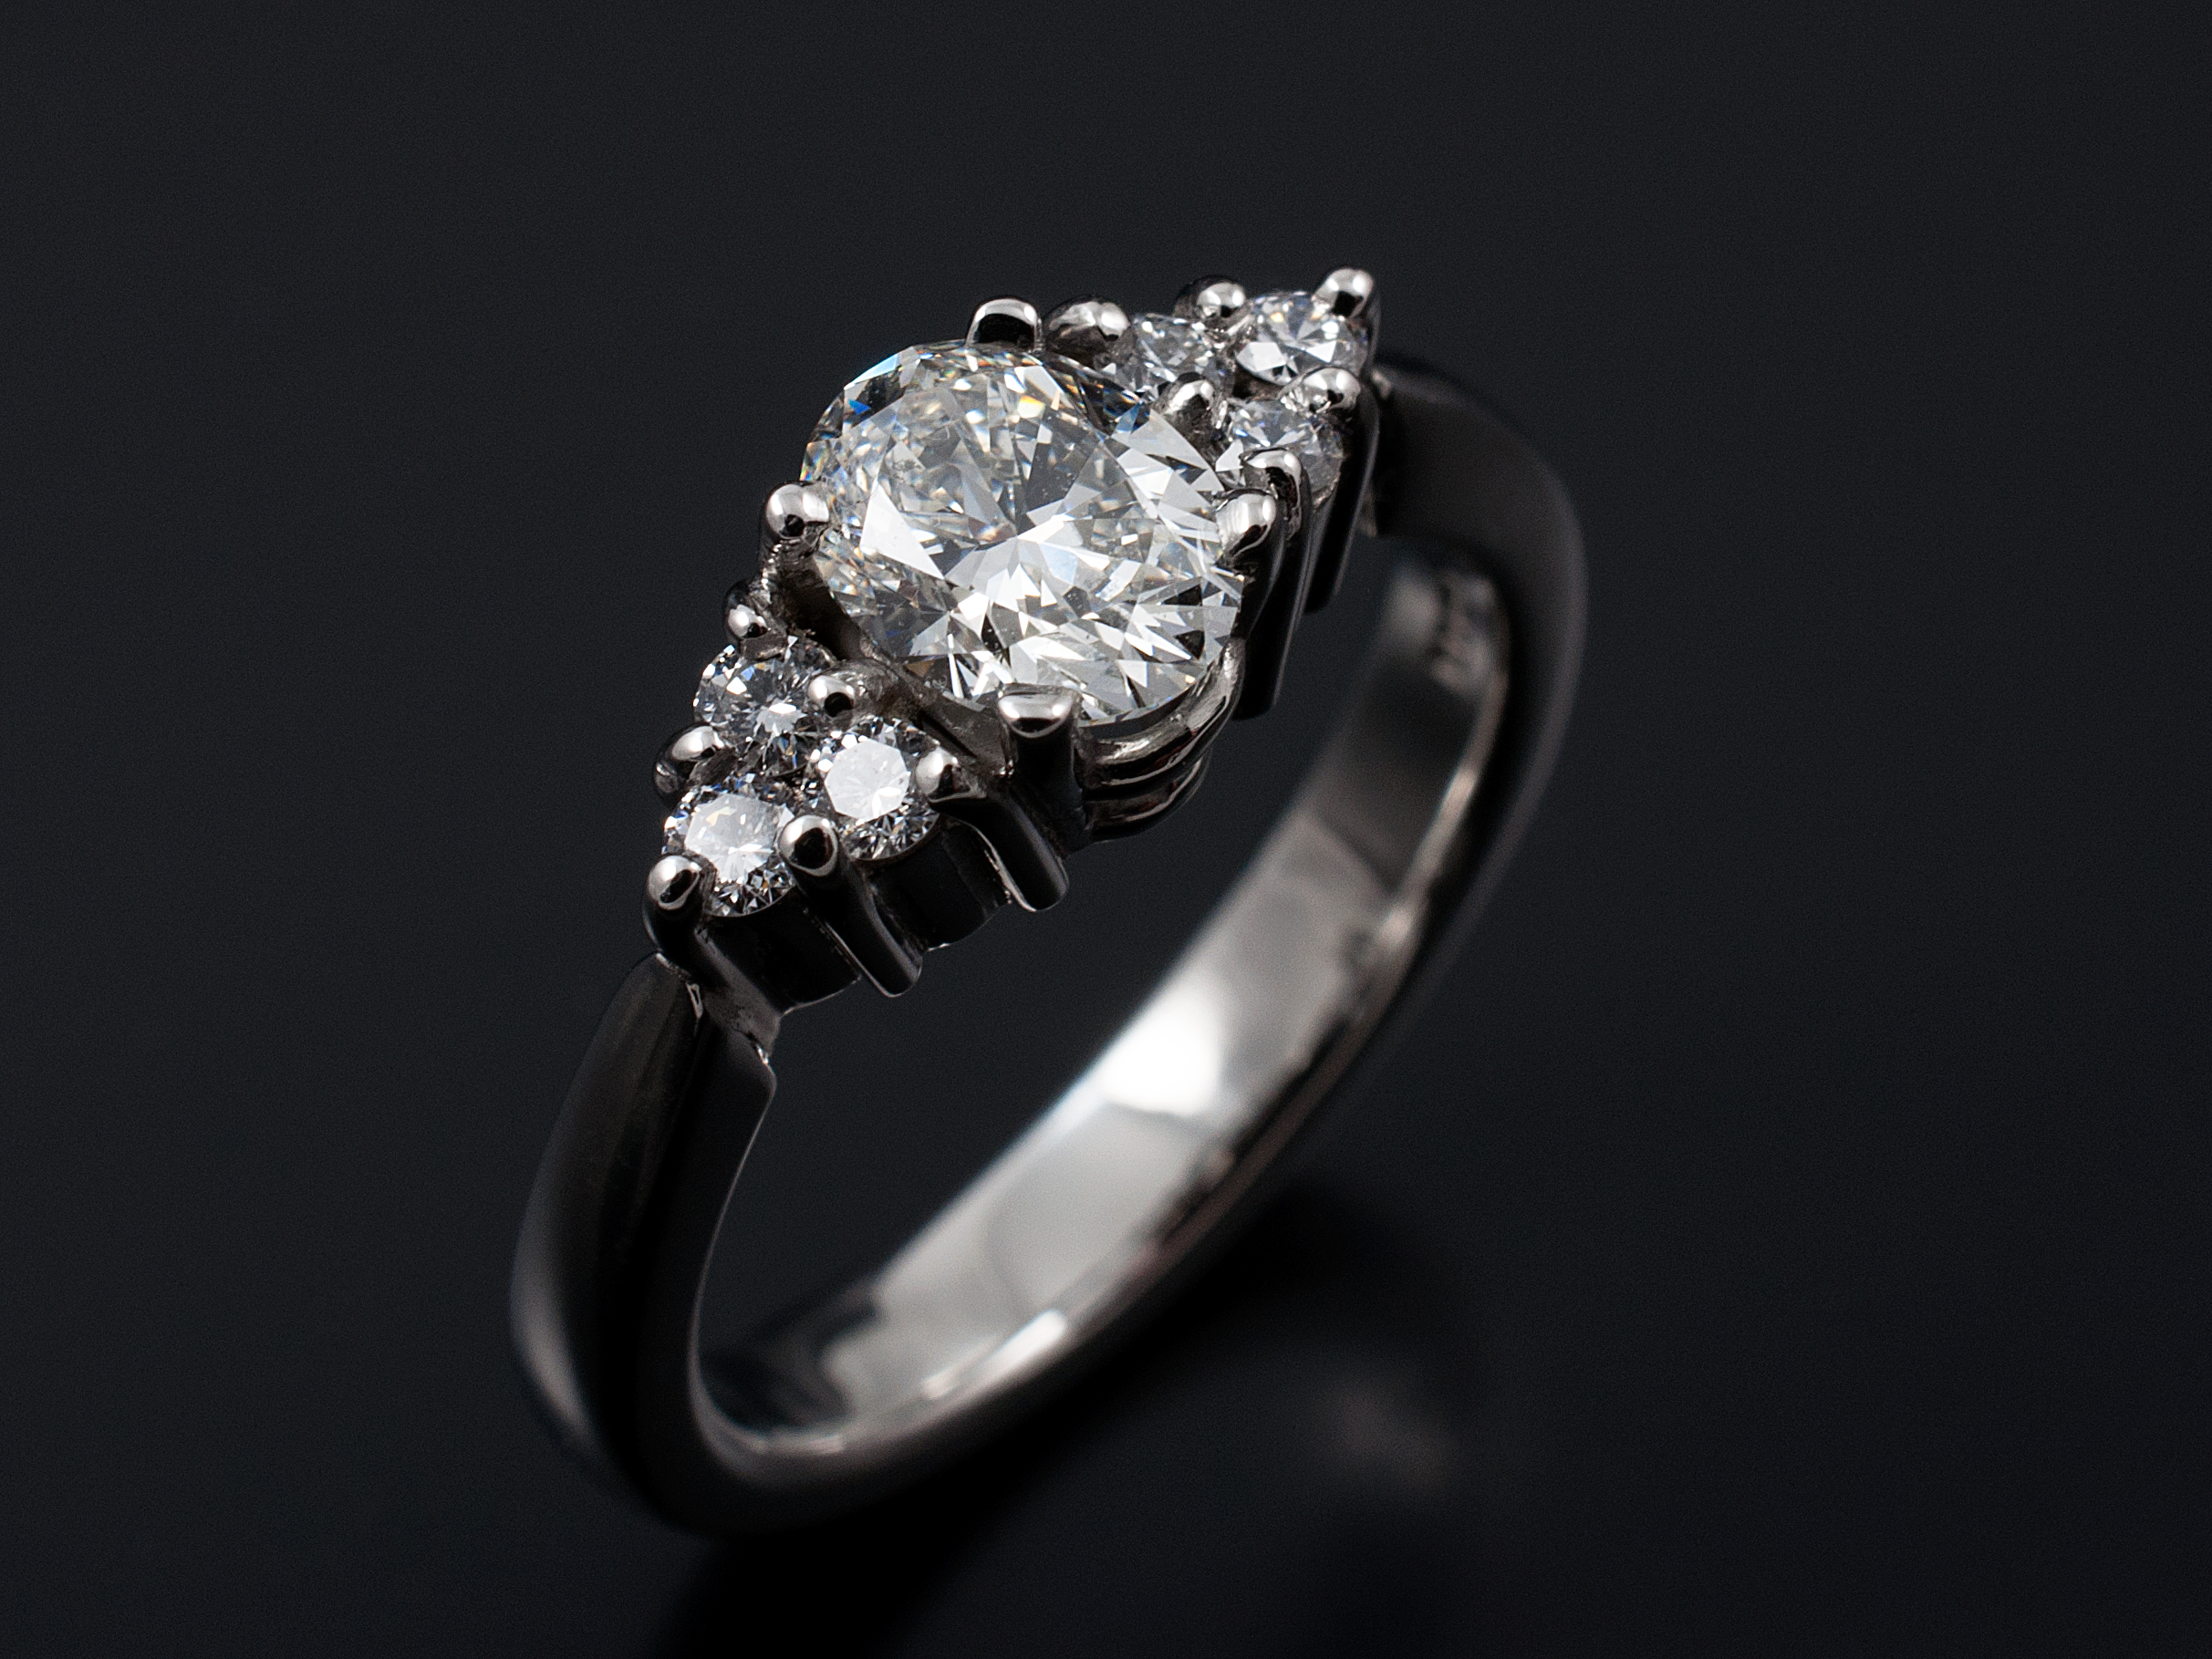 Oval Cut Diamond Engagement Rings Glasgow